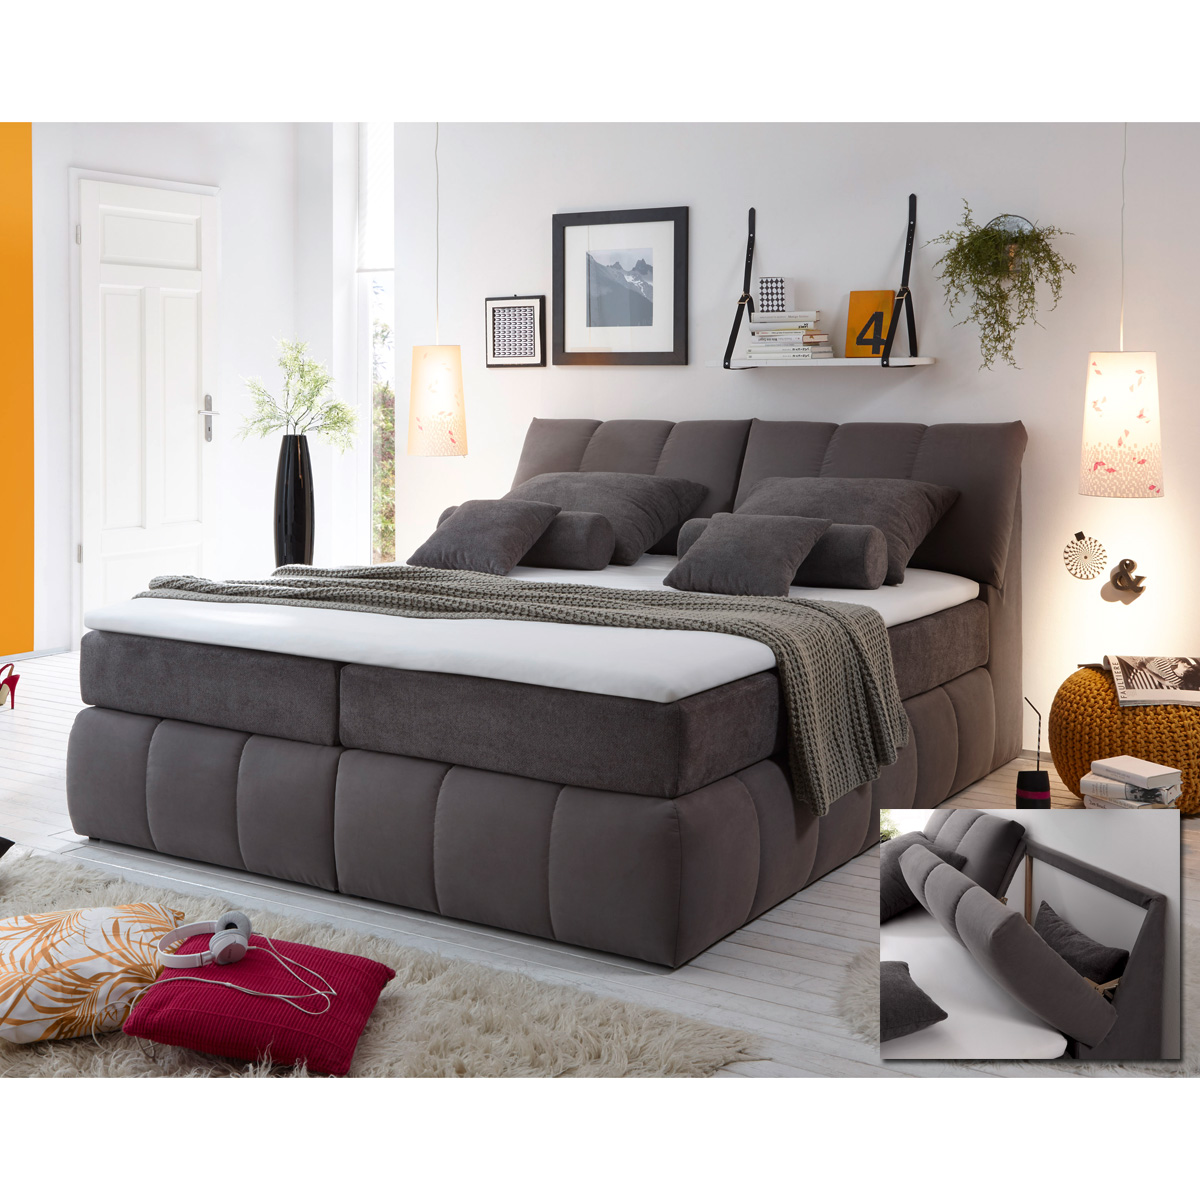 boxspringbett baltimore 1 bett schlafzimmerbett grau dunkelgrau topper 180x200 ebay. Black Bedroom Furniture Sets. Home Design Ideas